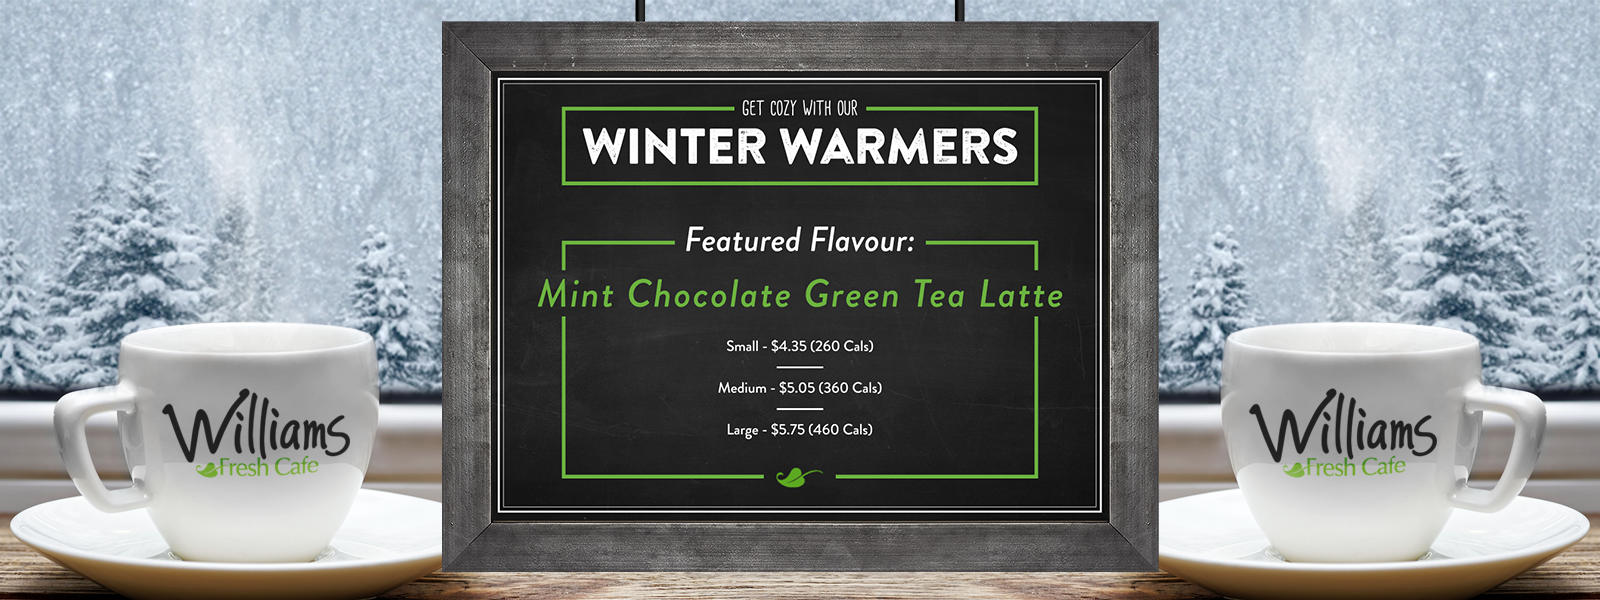 WFC Winter Warmers – For Website Desktop -Featured-New Prices